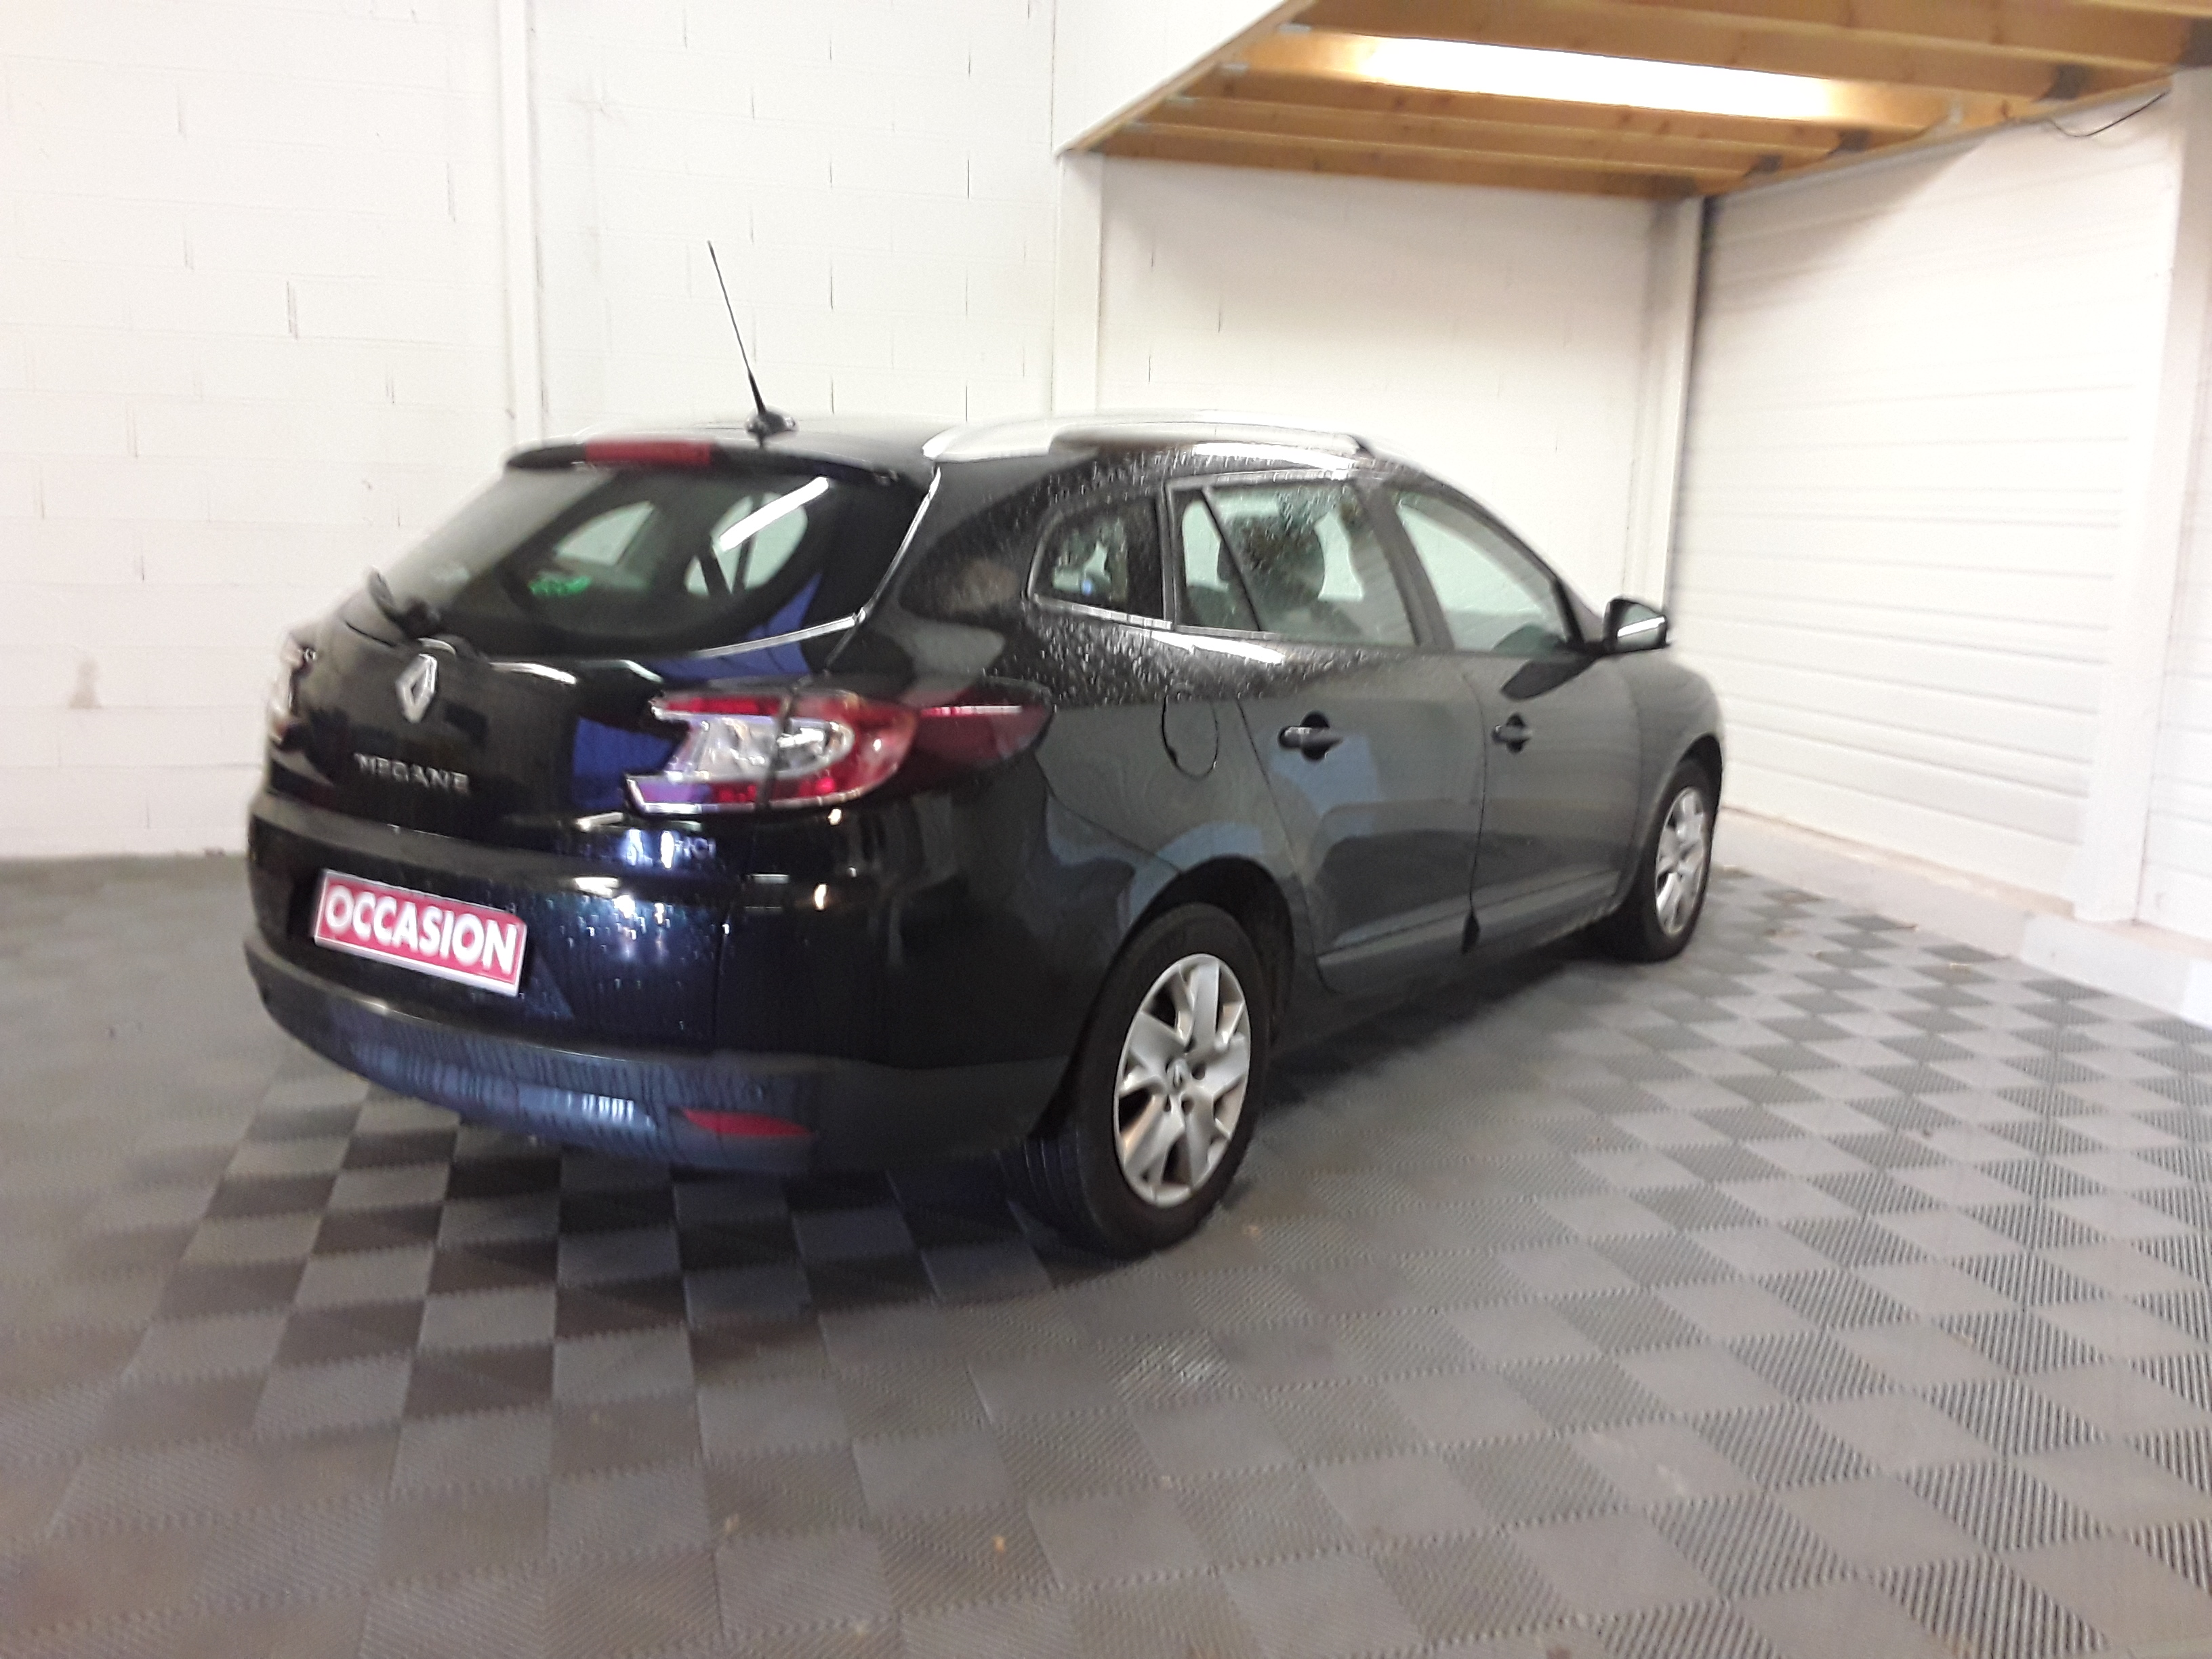 RENAULT MEGANE III ESTATE 2012 à 5900 € - Photo n°4